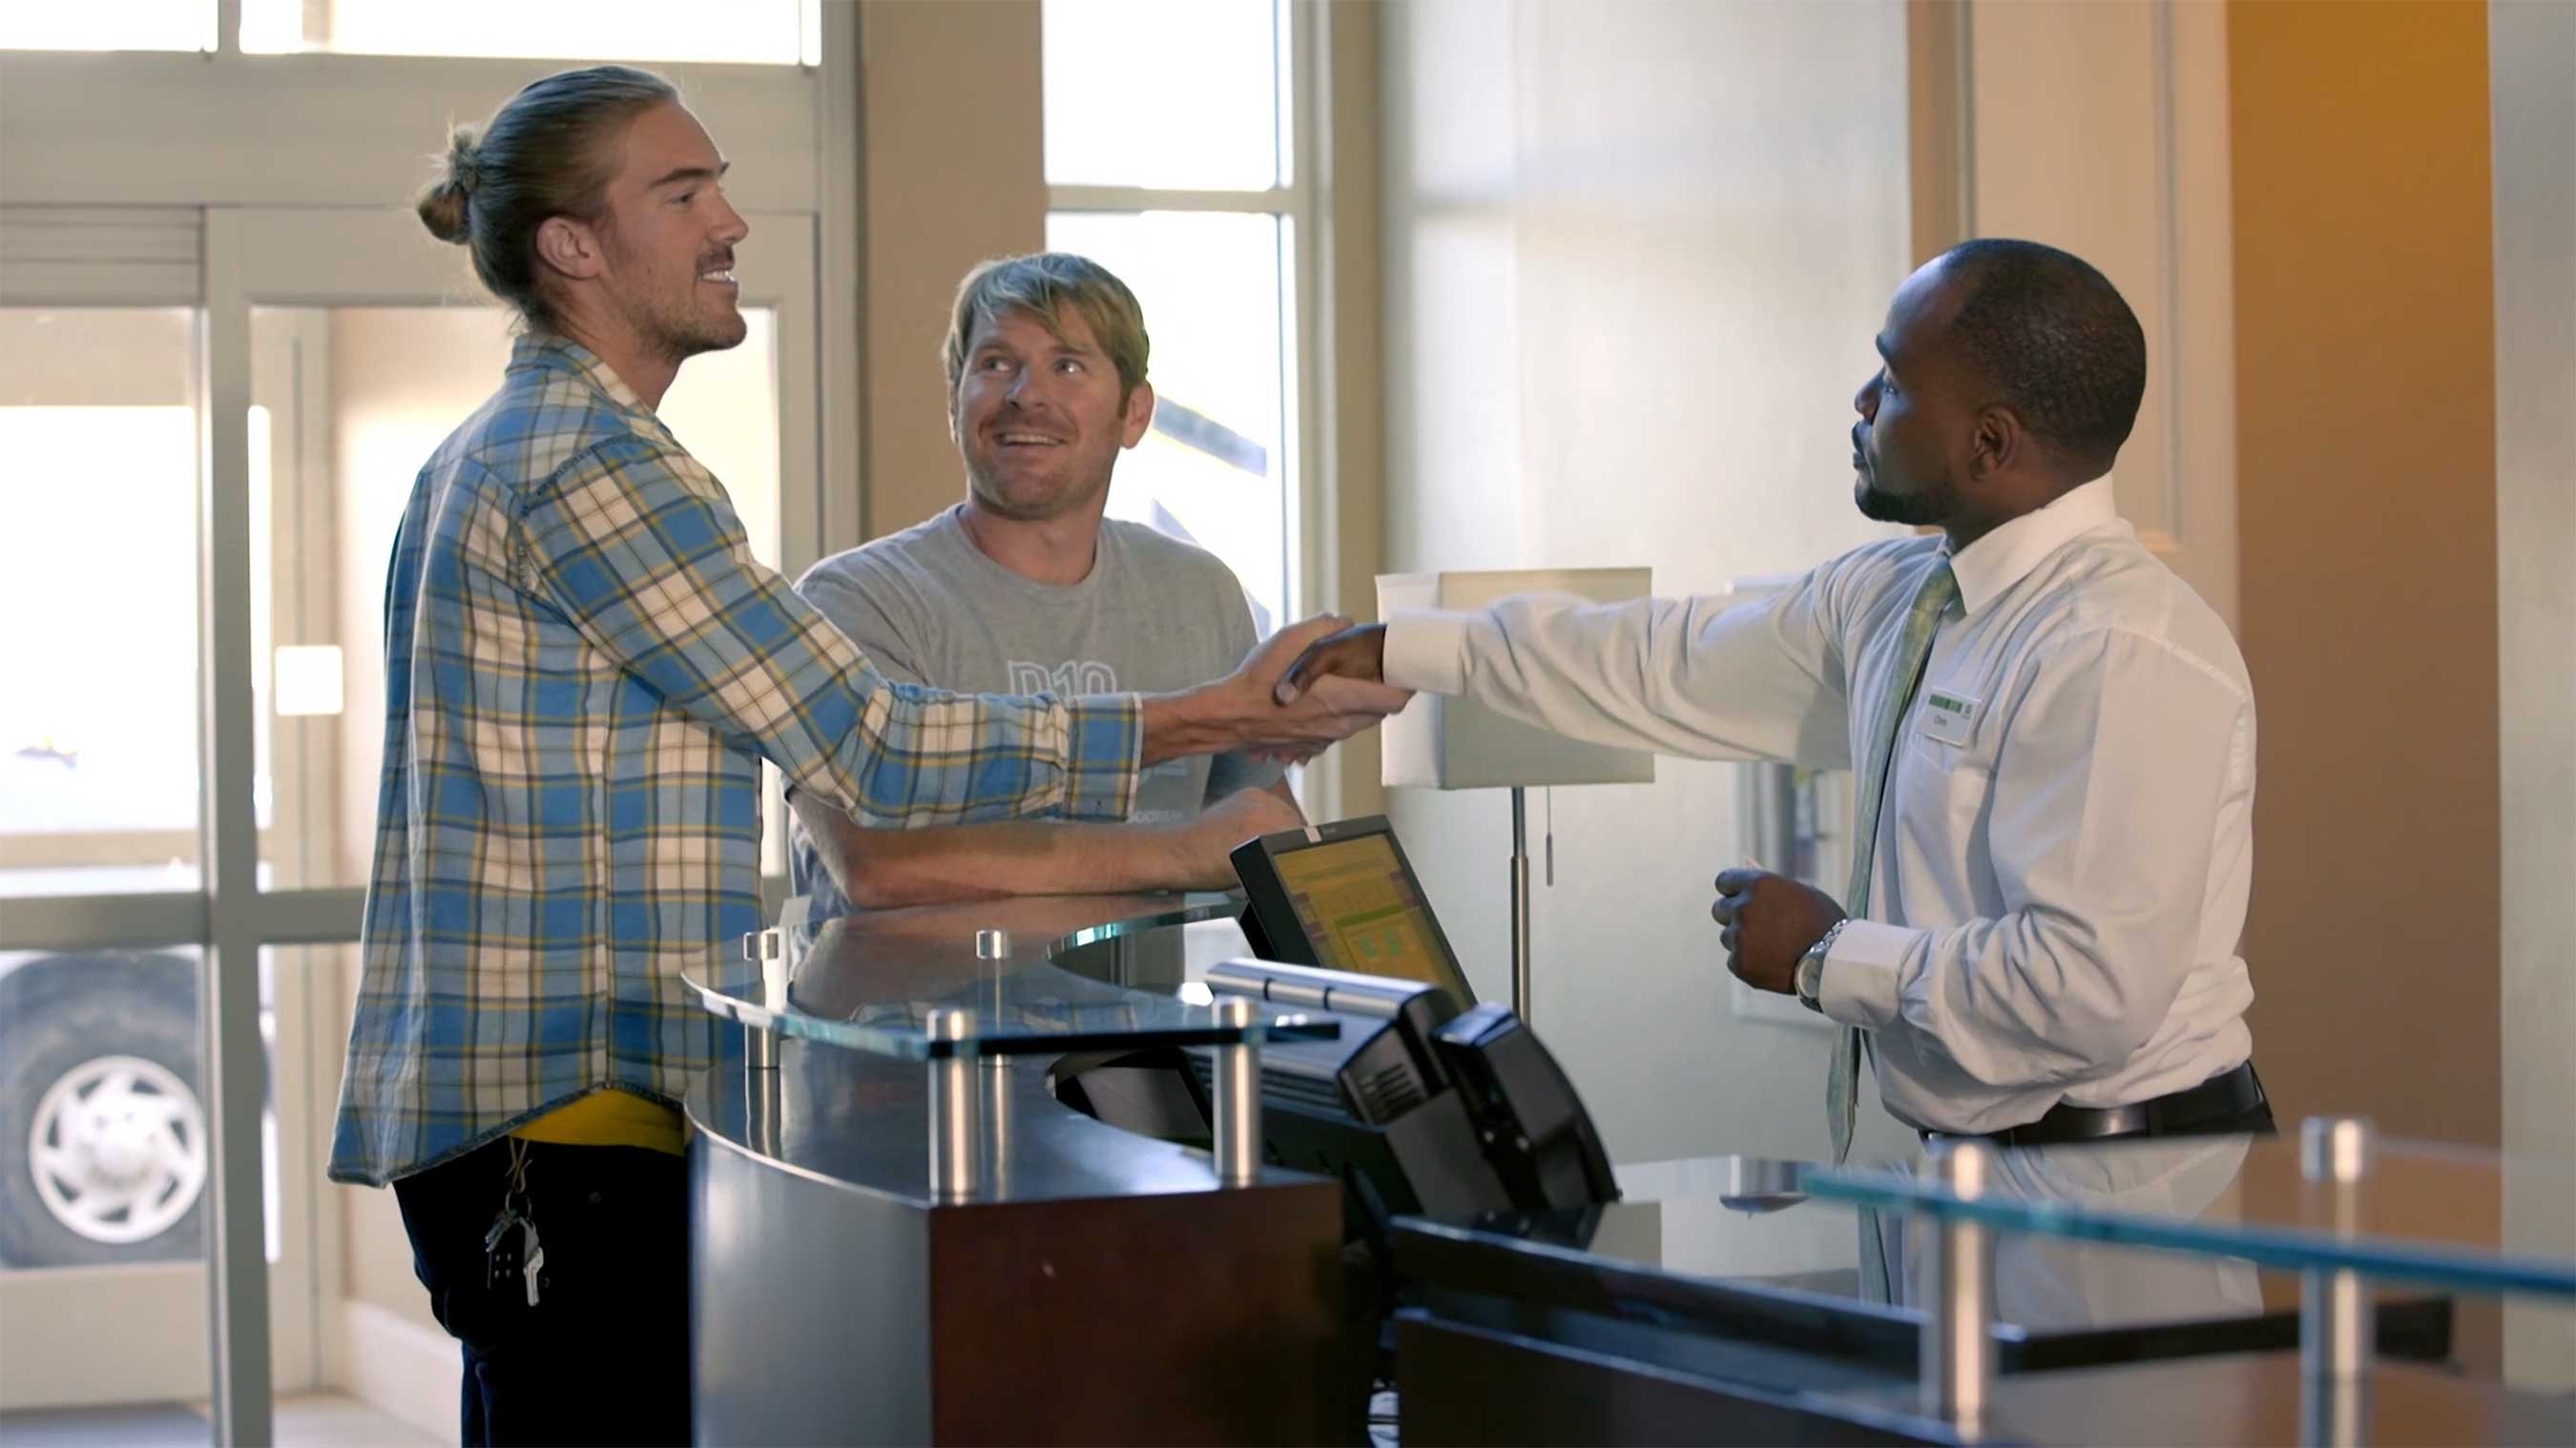 Holiday Inn® hotels support small business like Perfect 10 while on the road to help facilitate valuable connections that will grow their business.